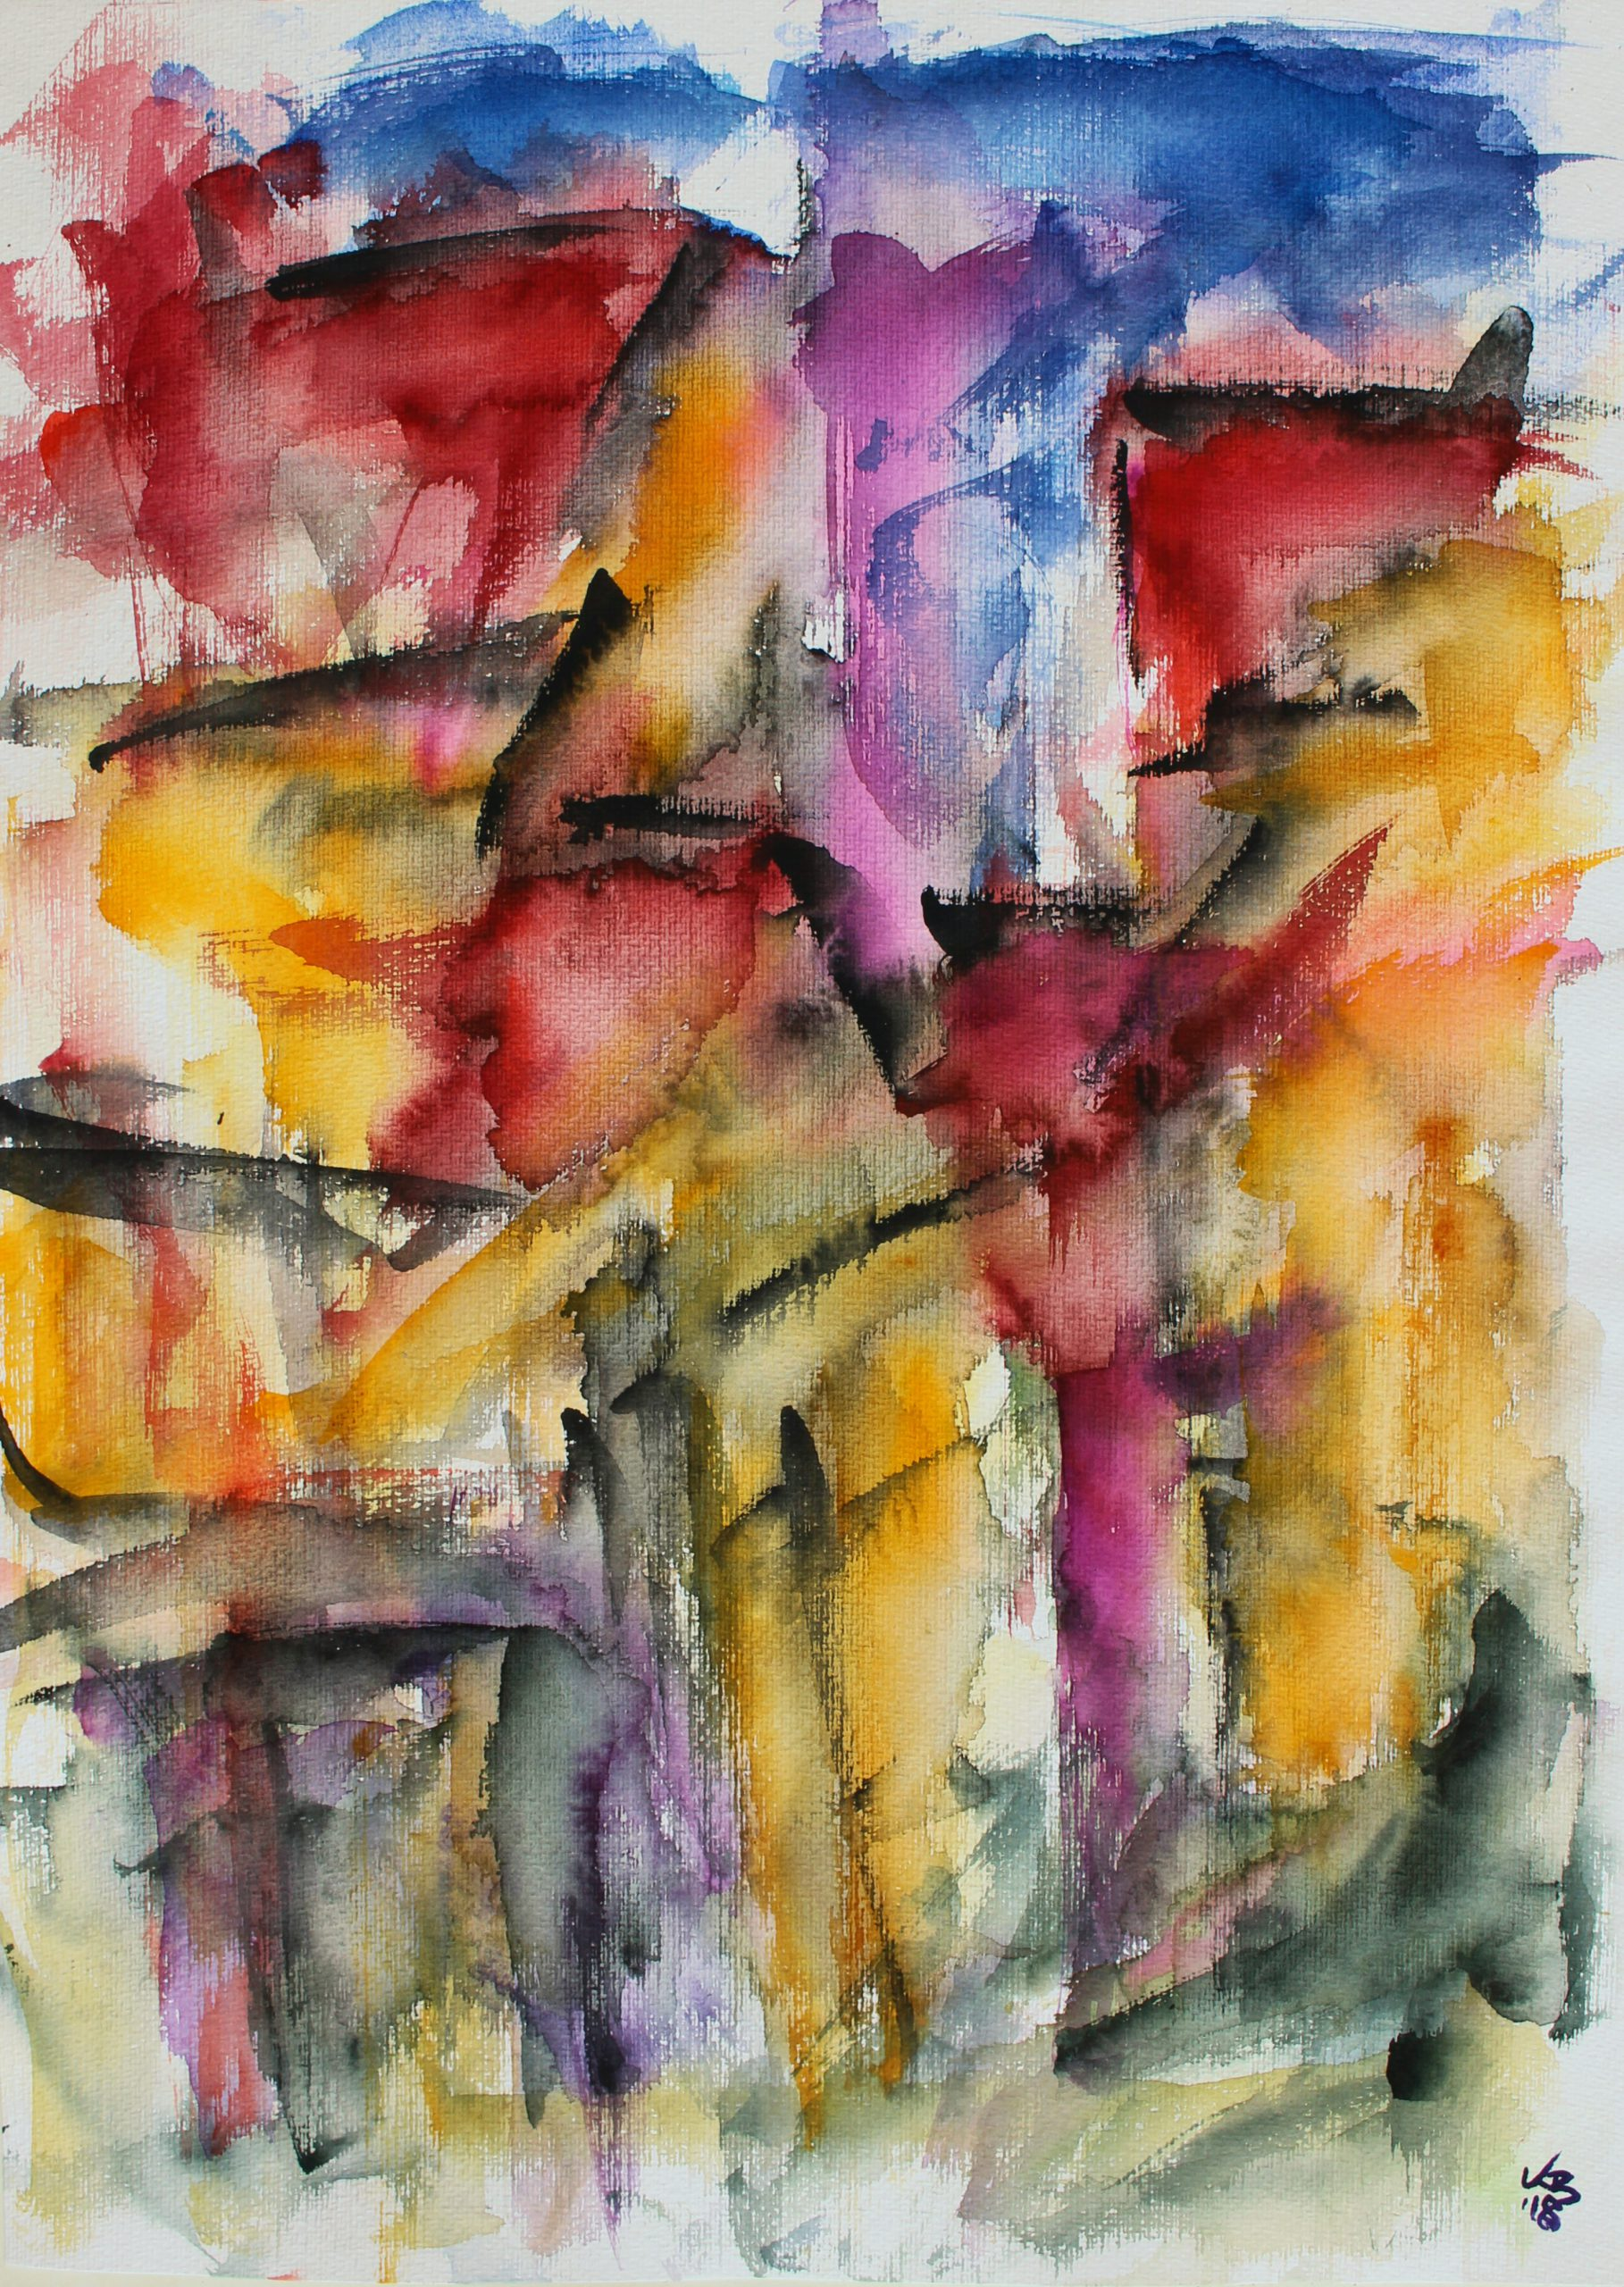 changing places II, Homberg, Westheimer Straße, Watercolour 50 x 70 cm, © 2018 by Klaus Bölling